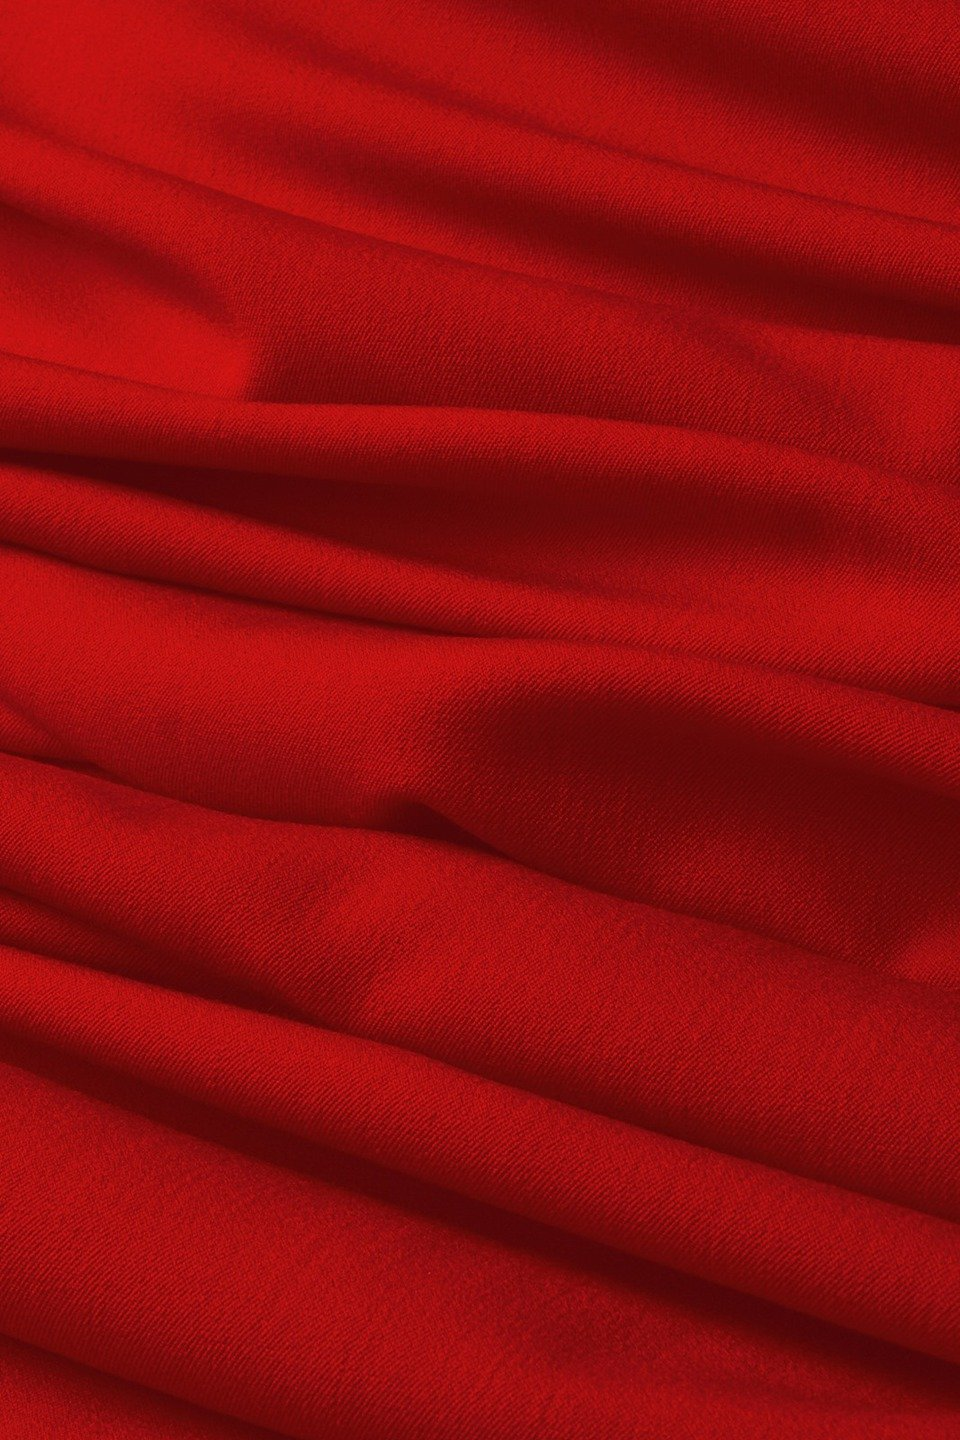 Couverture Anti-rayonnements Maternité bébé/enfant/ventre maman-ROUGE - Blanket Anti-radiations Maternity baby/child/Mom belly Protection-RED